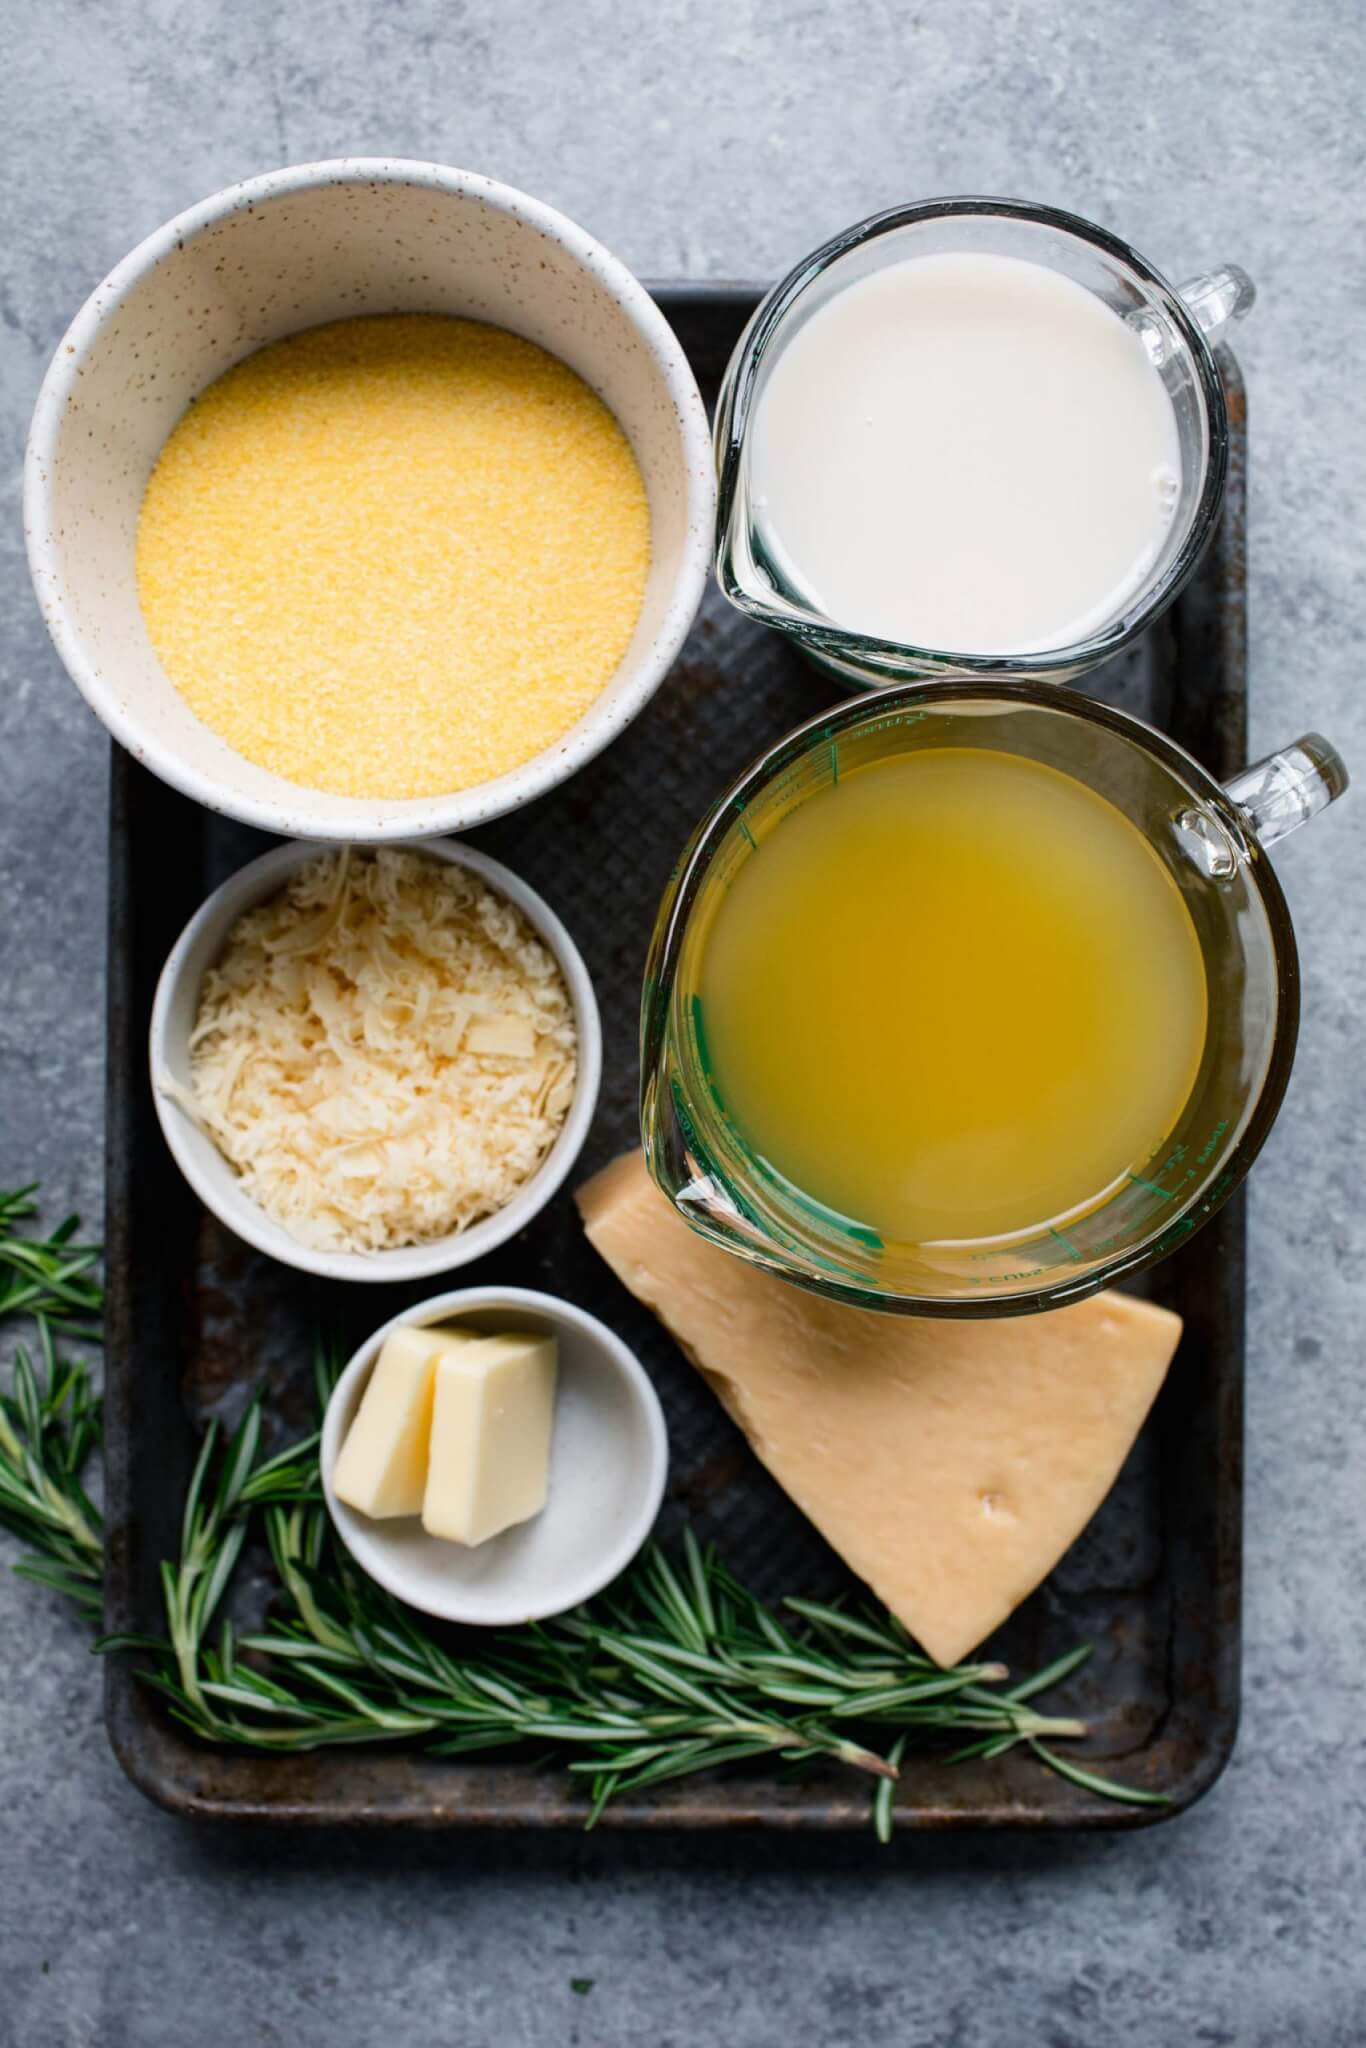 Ingredients for creamy polenta laid out on tray.